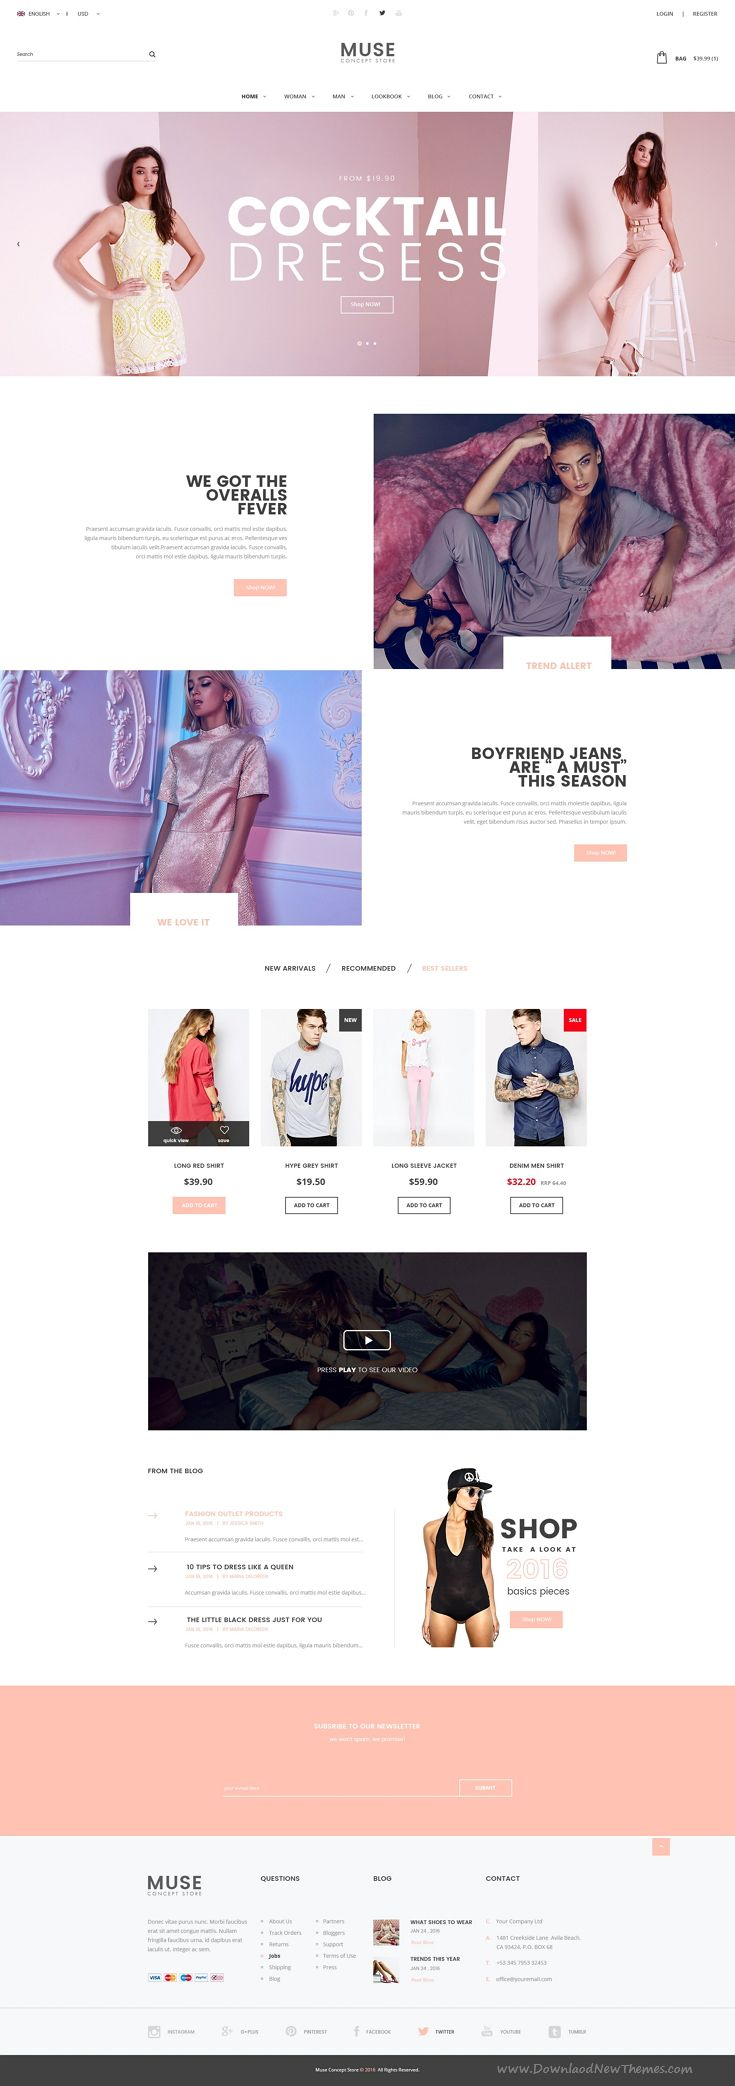 Muse Concept Store is wonderful Multiuse PSD Template for stunning eCommerce website.